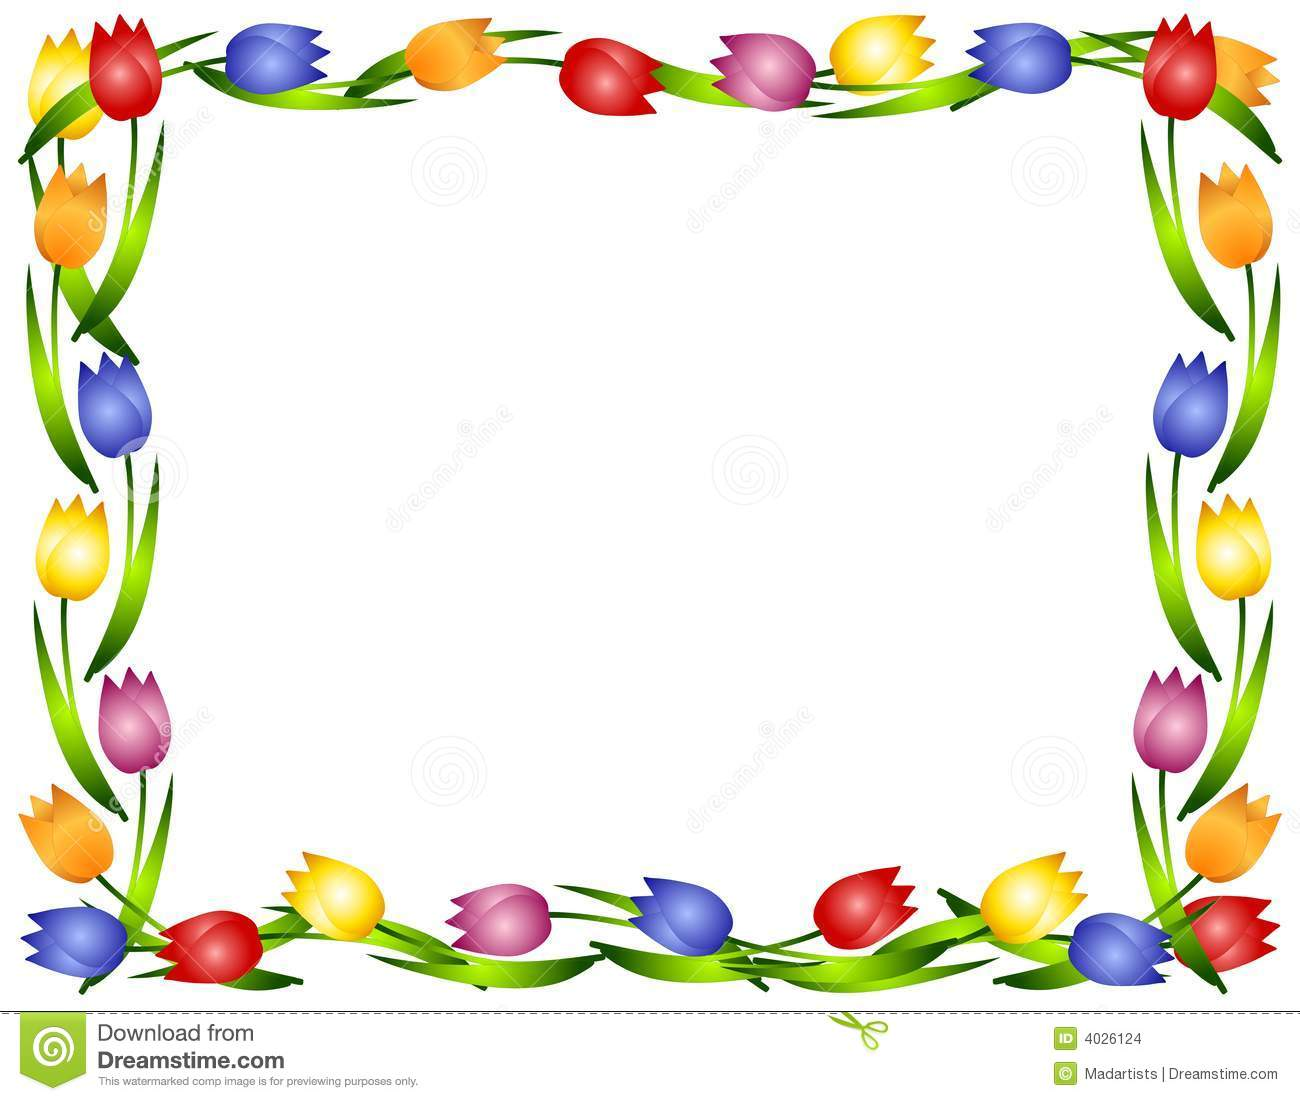 flower frame clipart at getdrawings com free for personal use rh getdrawings com border clipart for word border cliparts